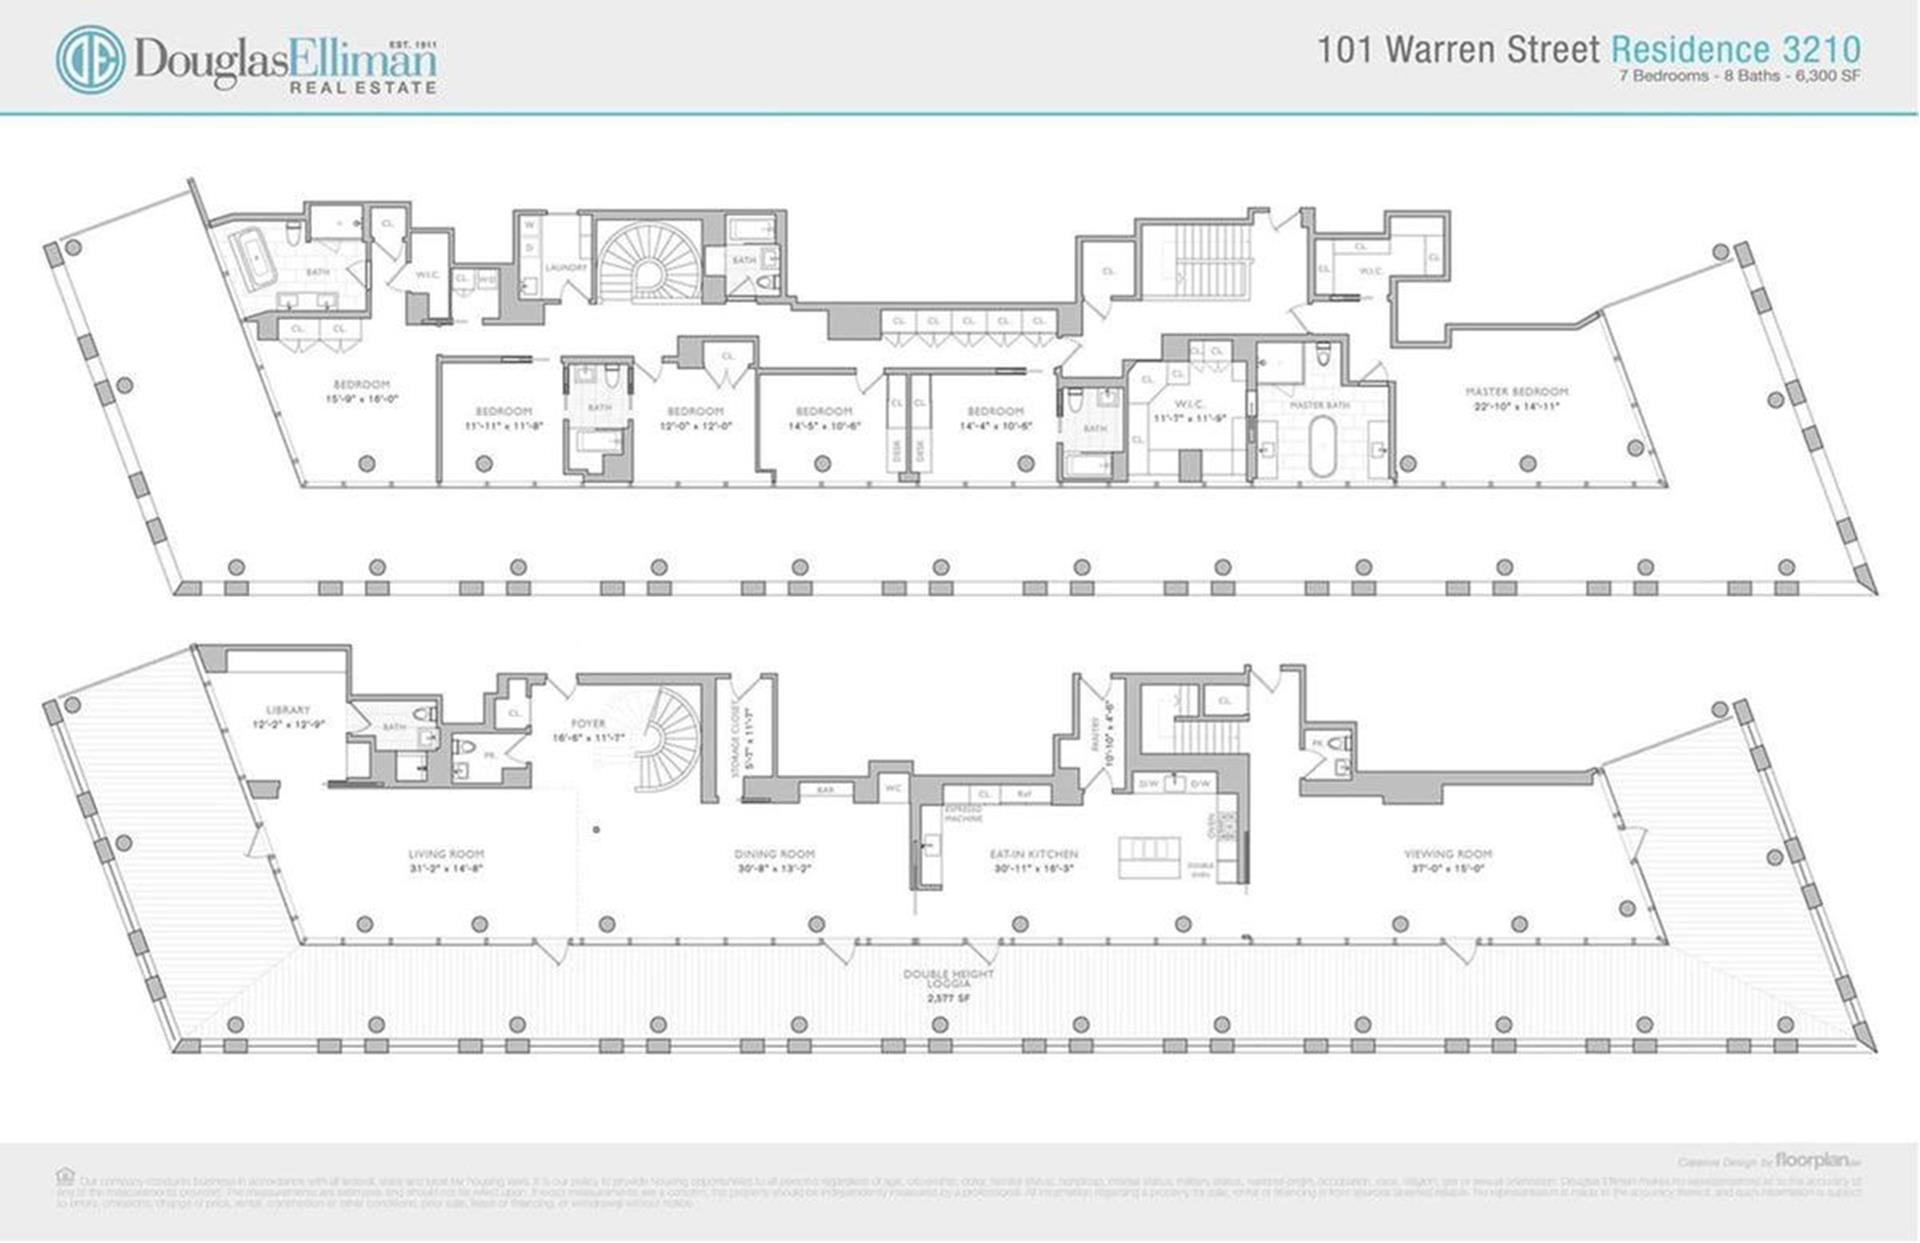 Floor plan of 101 Warren Street, 3210/3240 - TriBeCa, New York